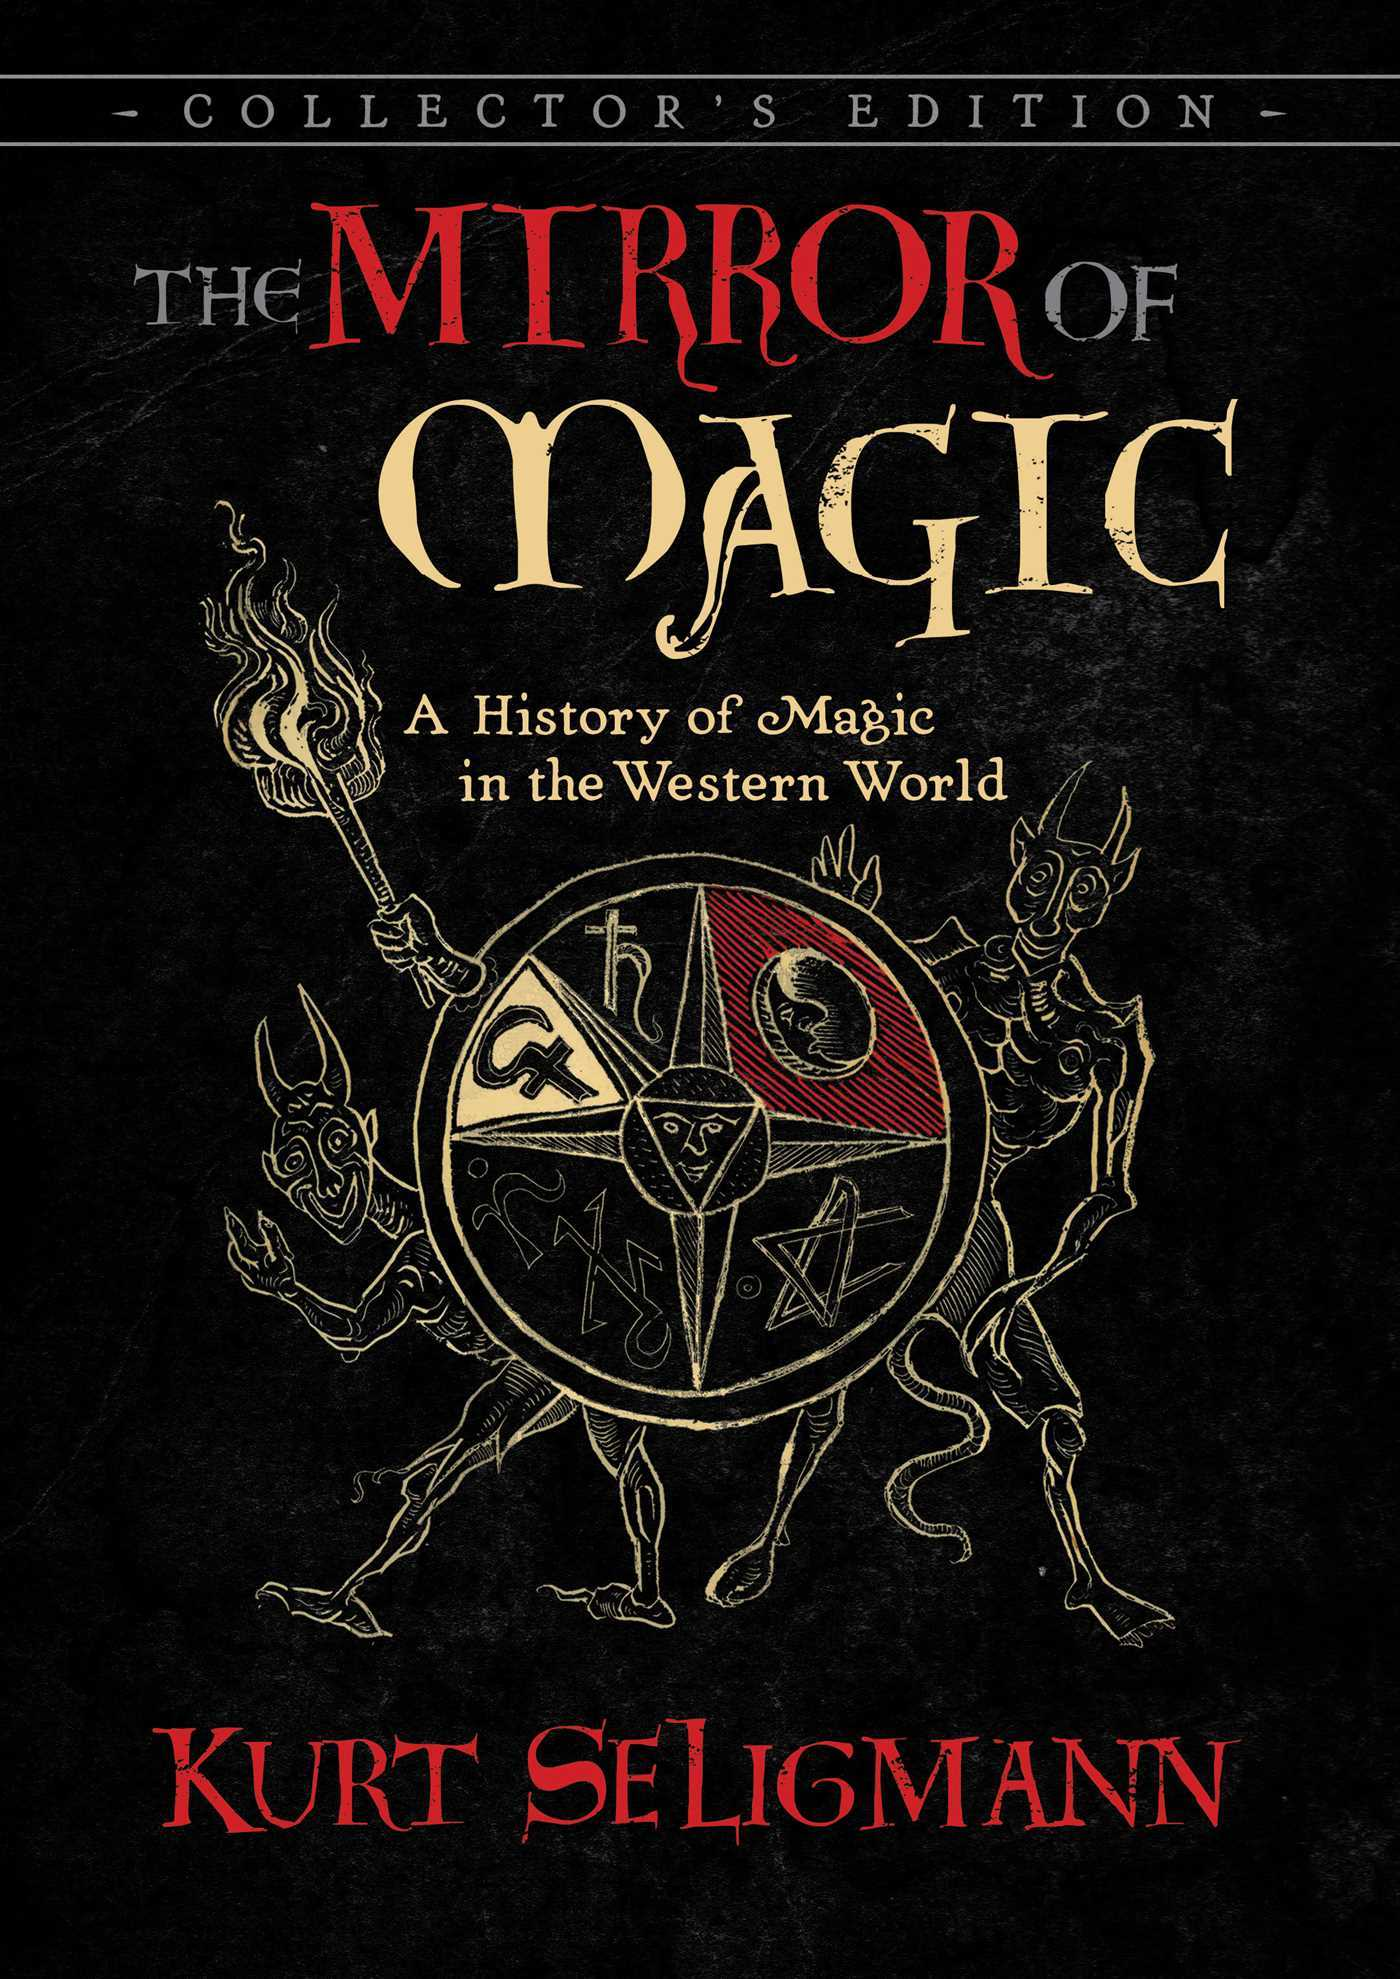 The Mirror of Magic A History of Magic in the Western World 6th Edition